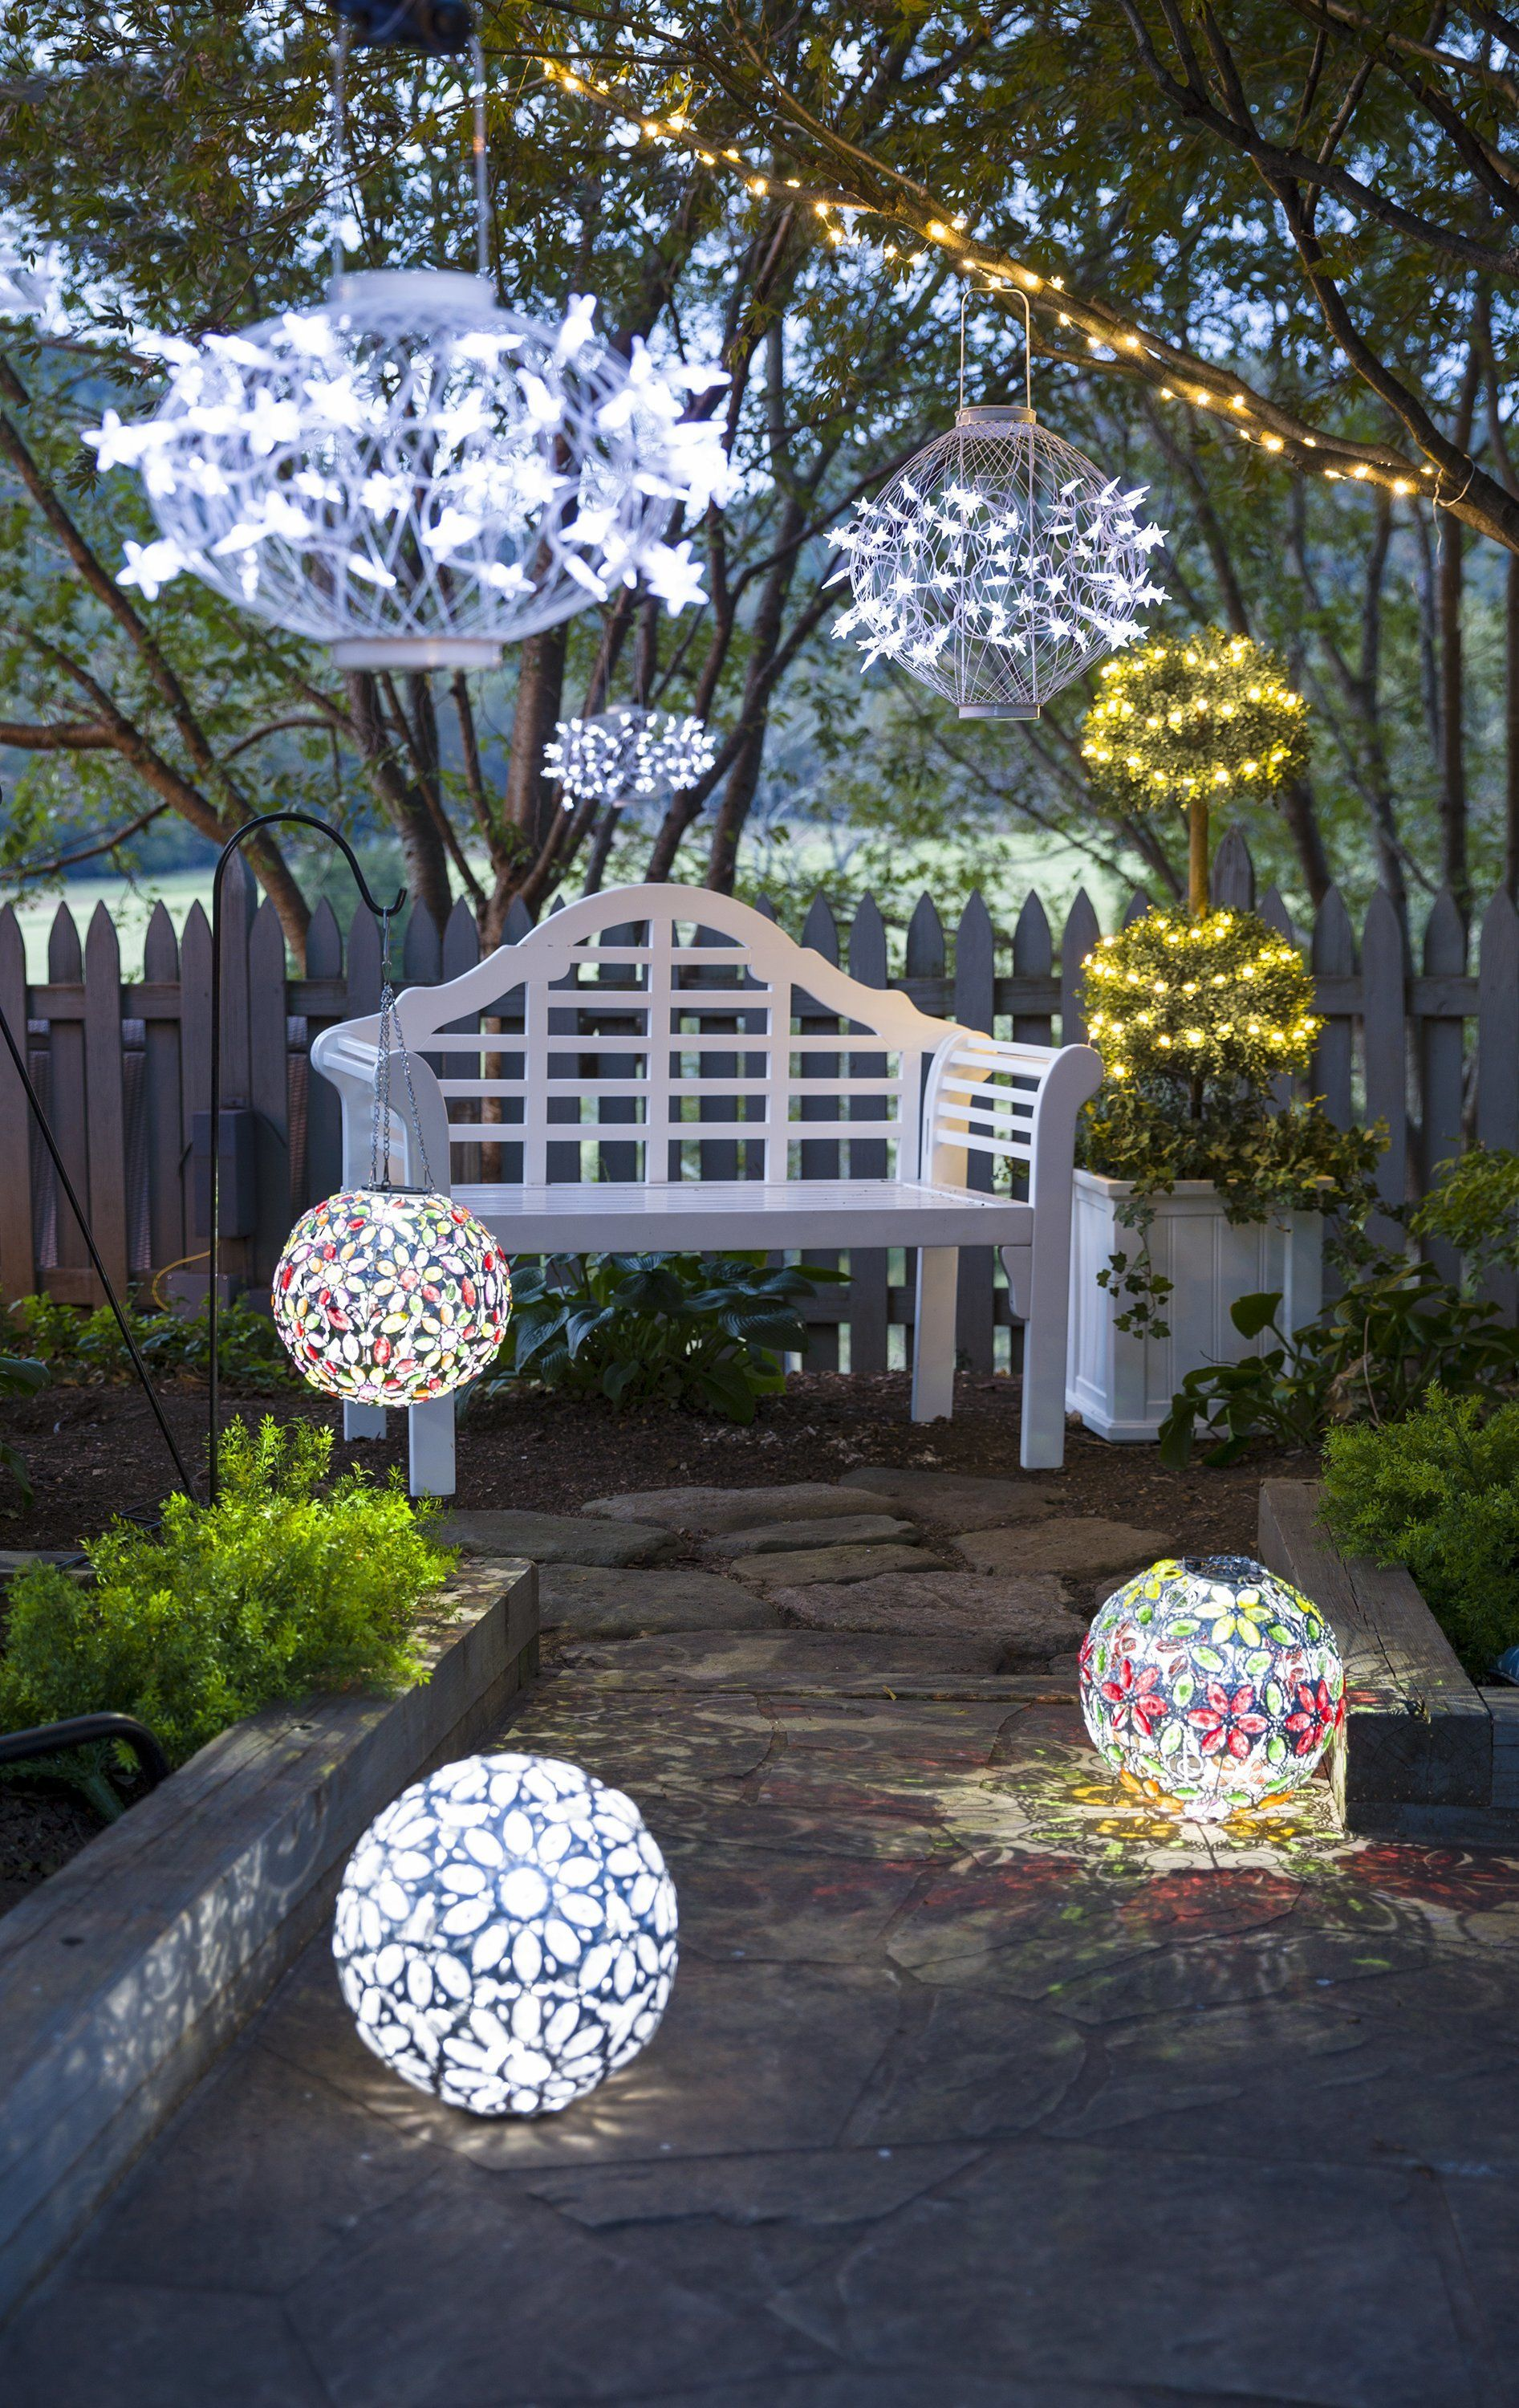 decorative solar lights on light up your nights with pretty ideas outdoor lighting modern outdoor lighting diy outdoor lighting outdoor lighting